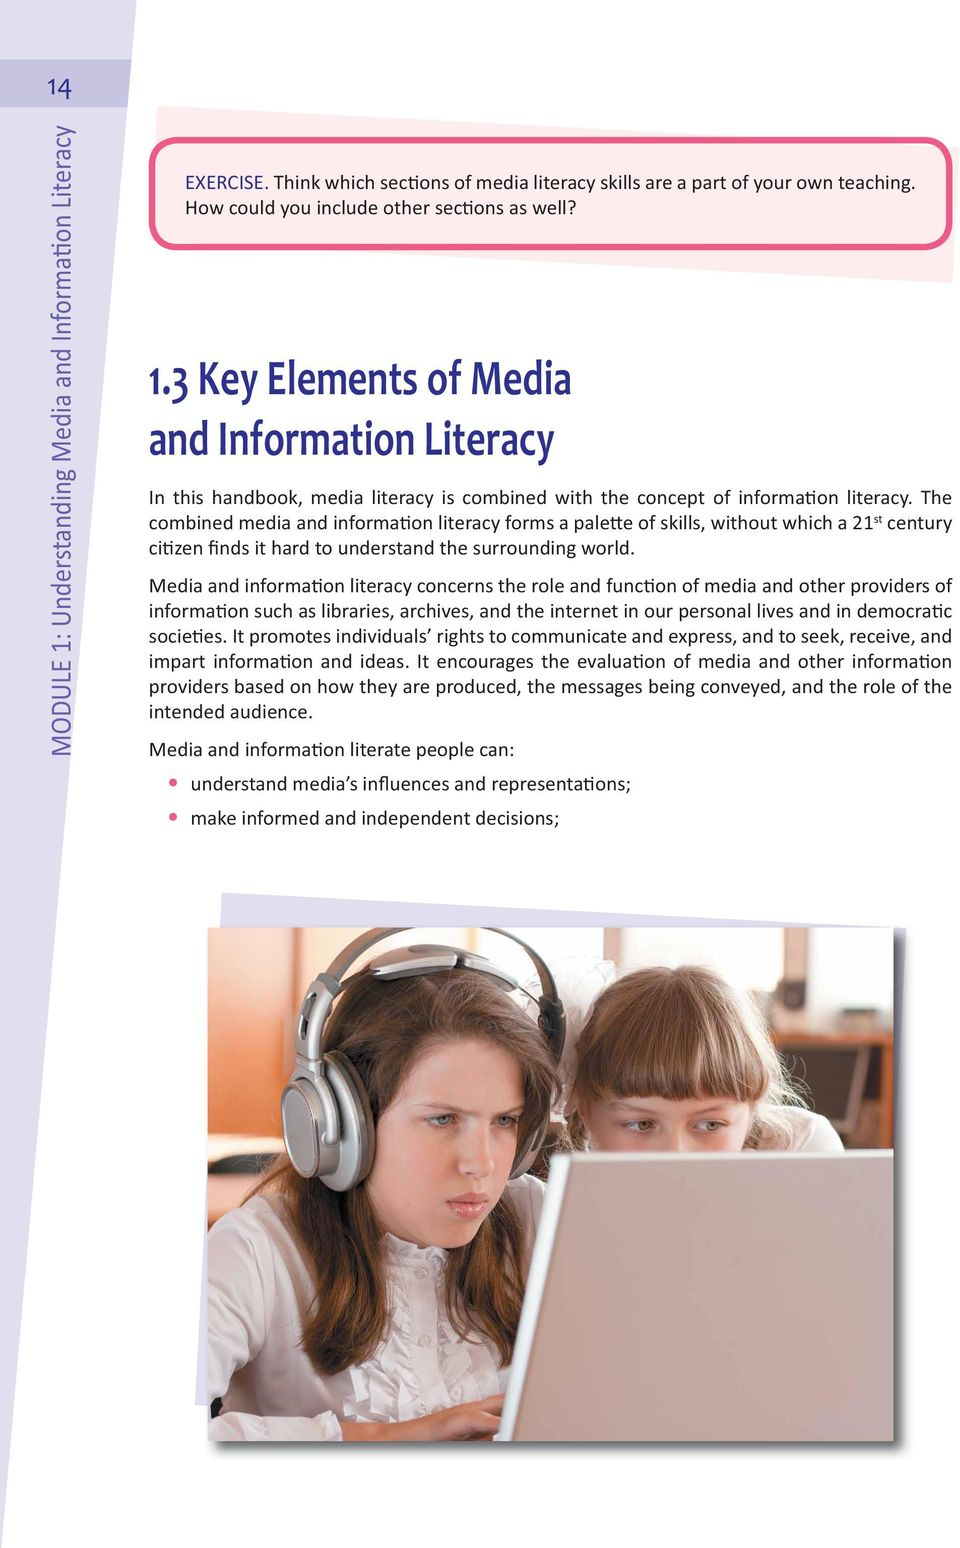 Media and informa on literacy concerns the role and func on of media and other providers of informa on such as libraries, archives, and the internet in our personal lives and in democra c socie es.